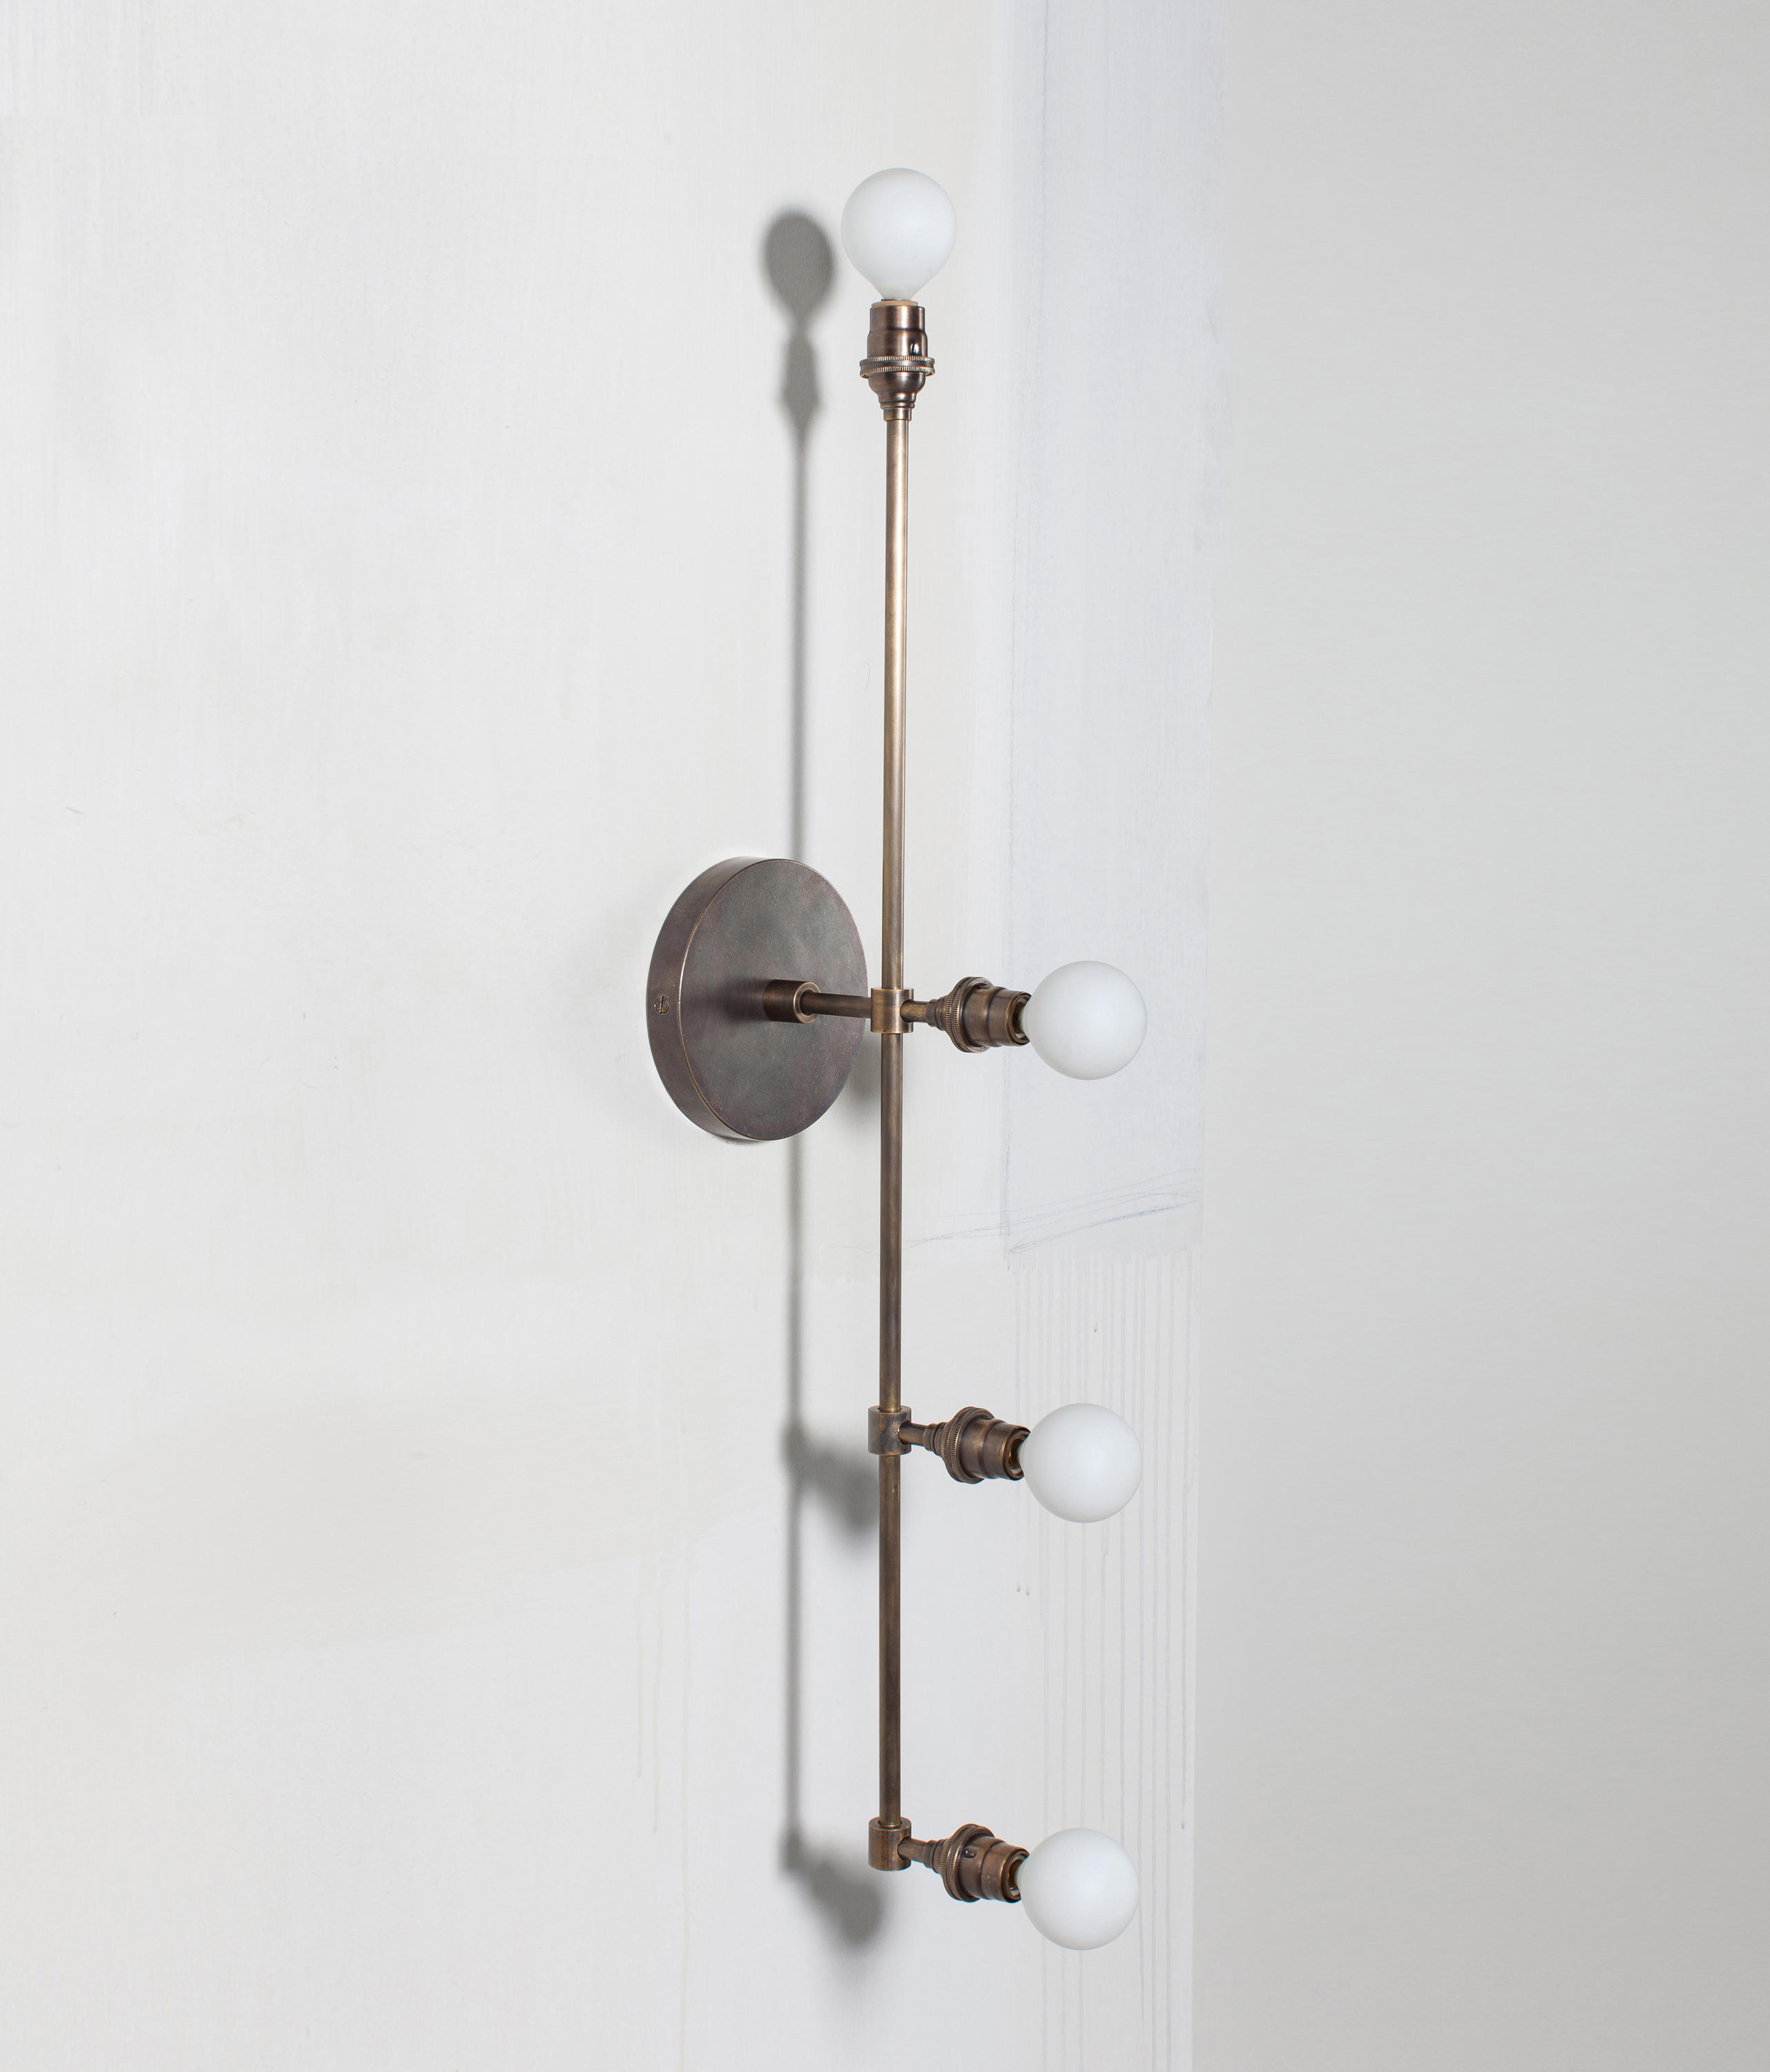 m sconce sconces apparatus studio vanity search ideas design